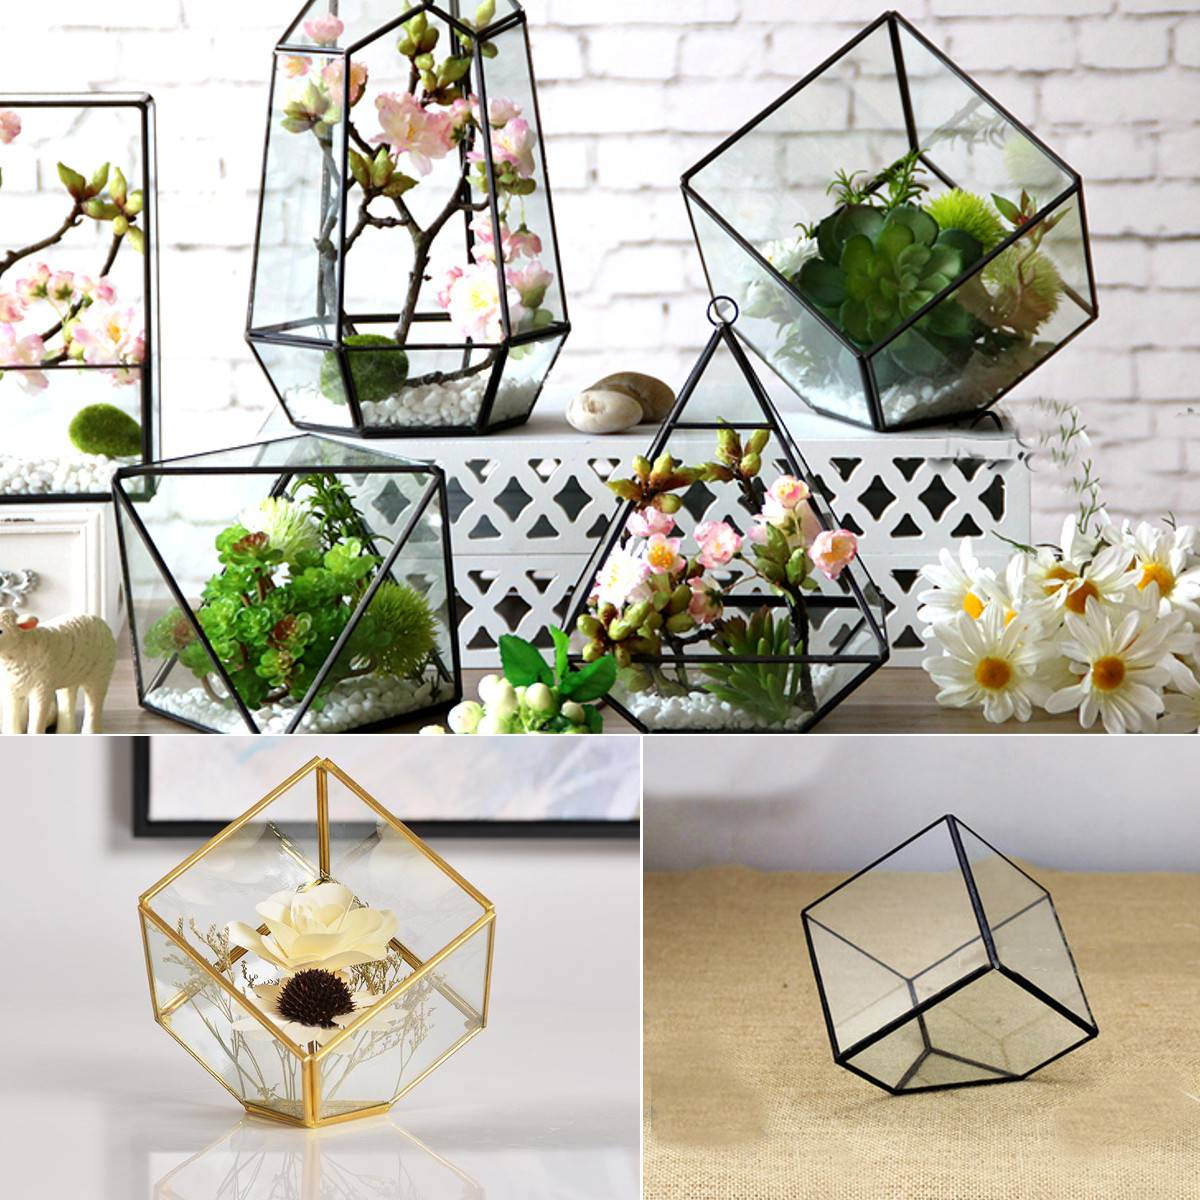 Glass Geometric Terrarium Faceted Tabletop Succulent Plants Container Pot Box Artistic Planter Jewelry Candle Holder Gift Home